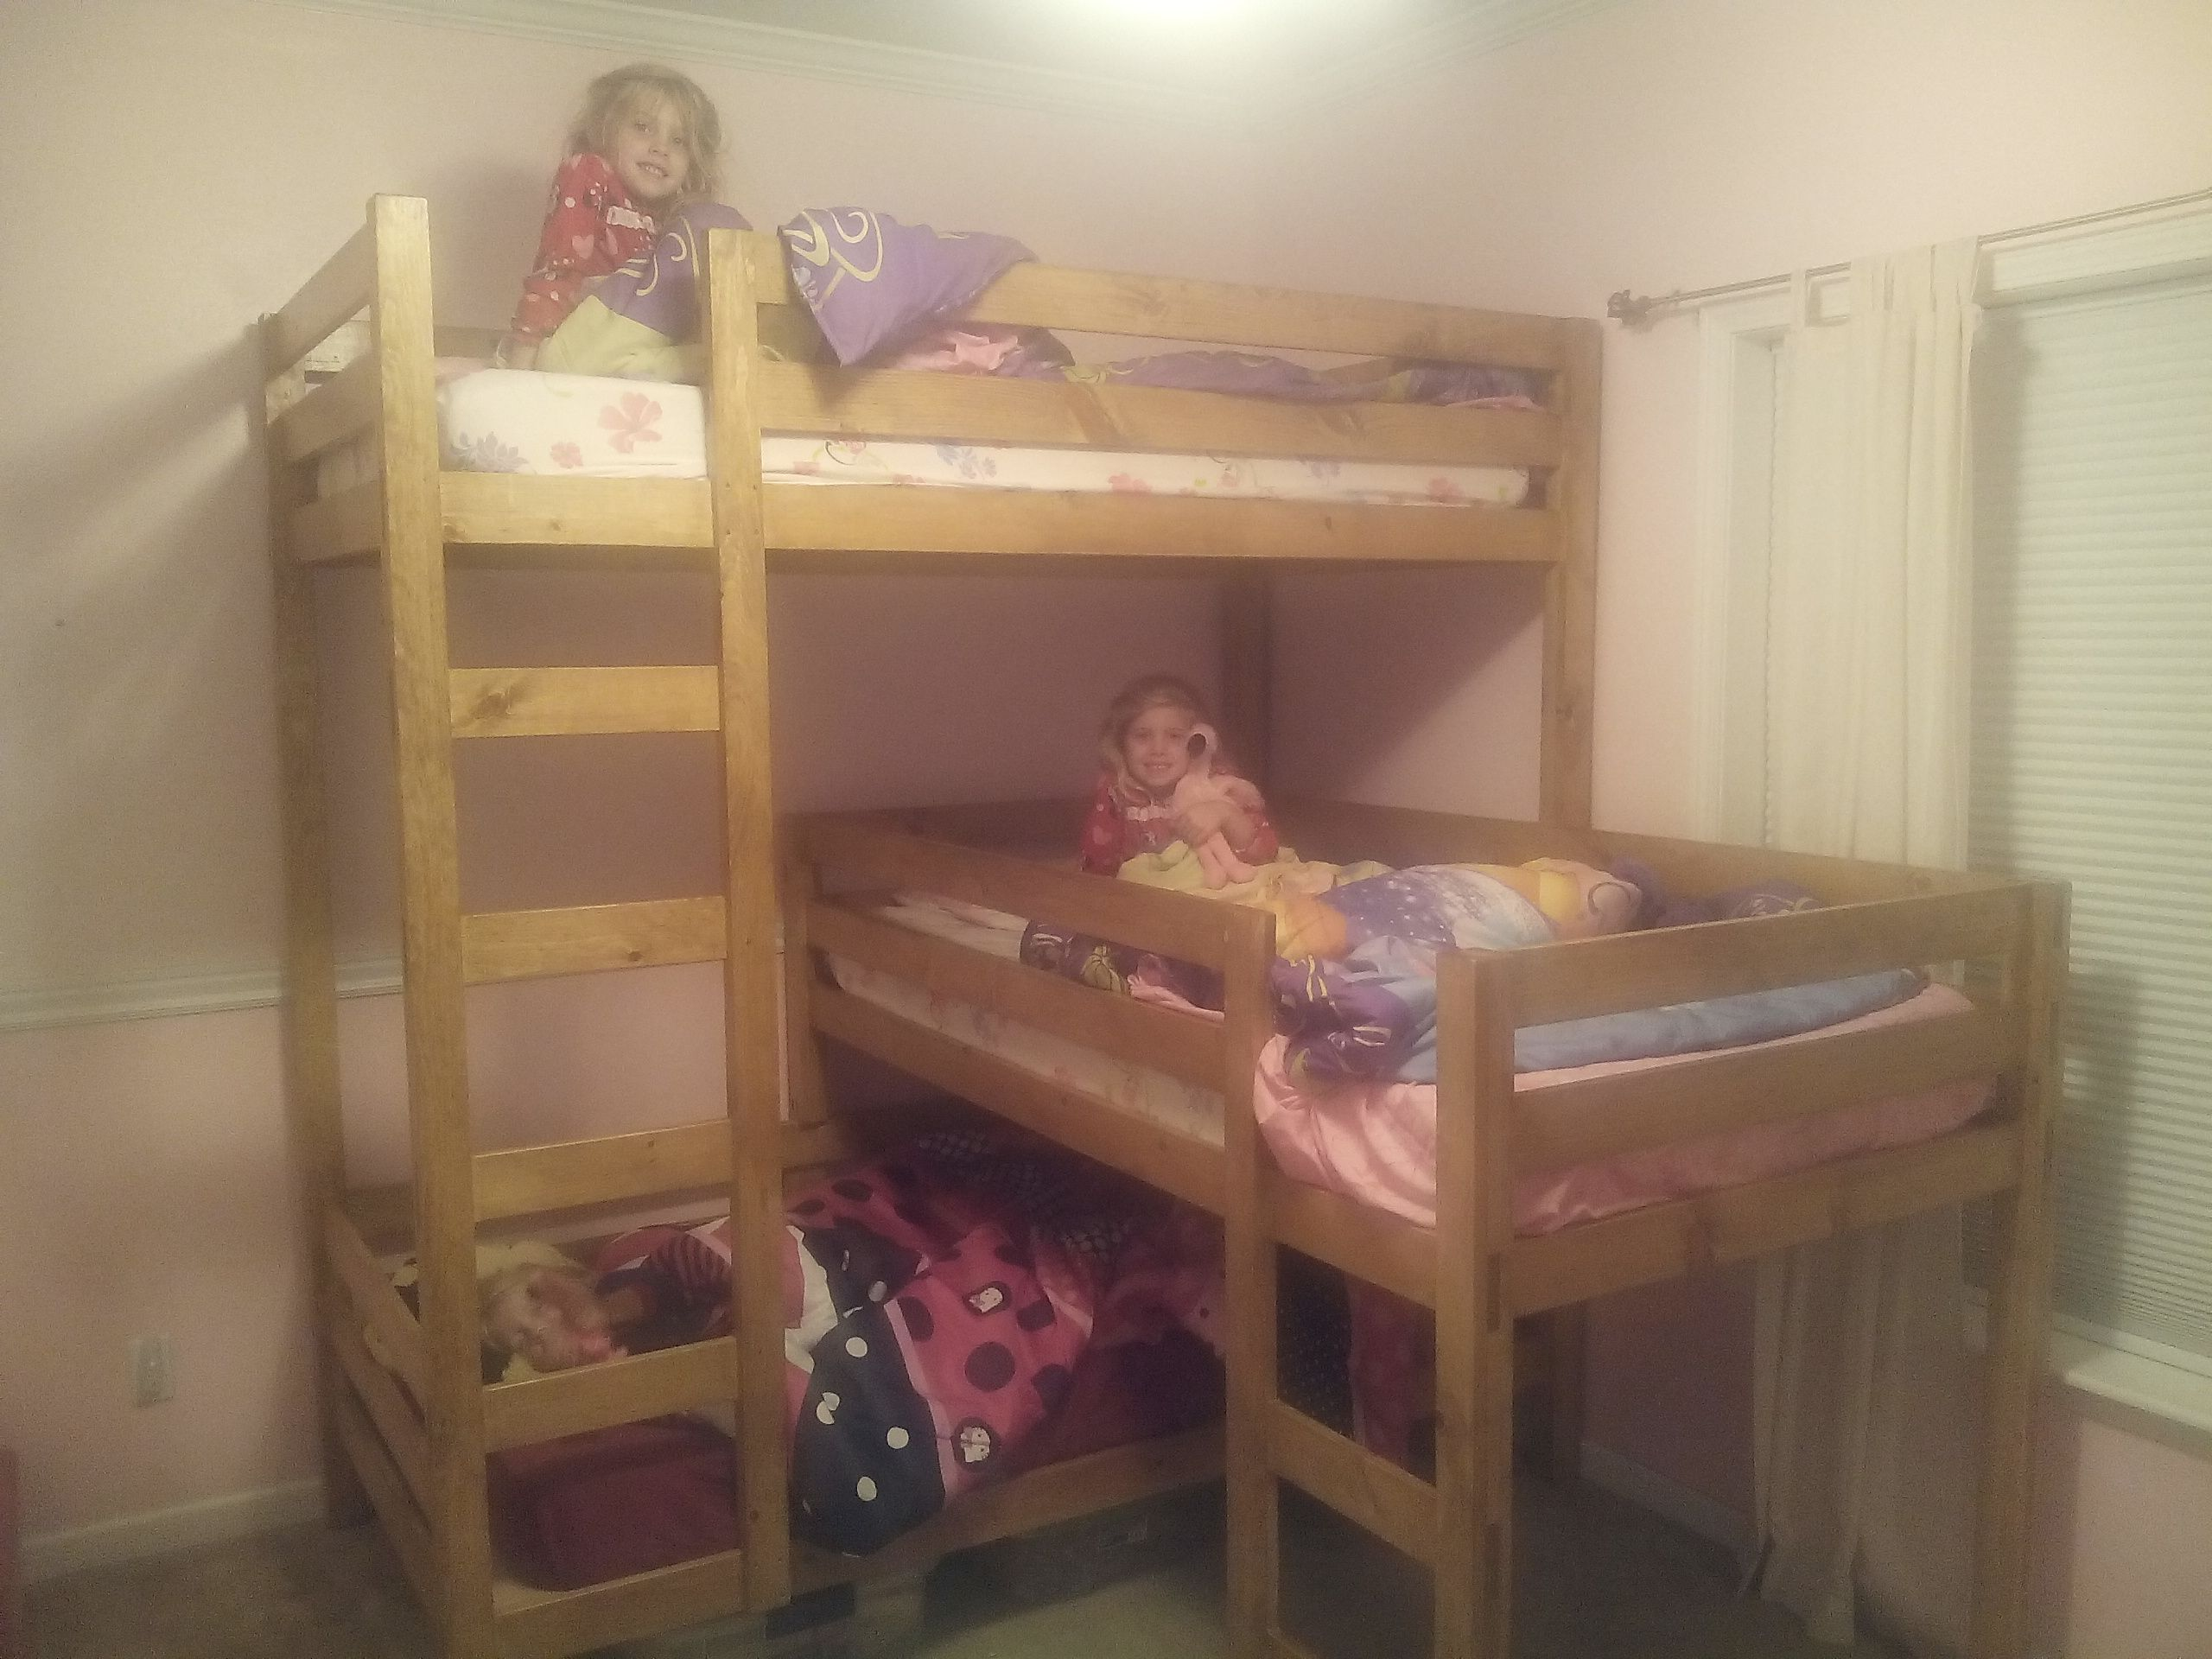 Triple Bunk Bed Do It Yourself Home Projects from Ana